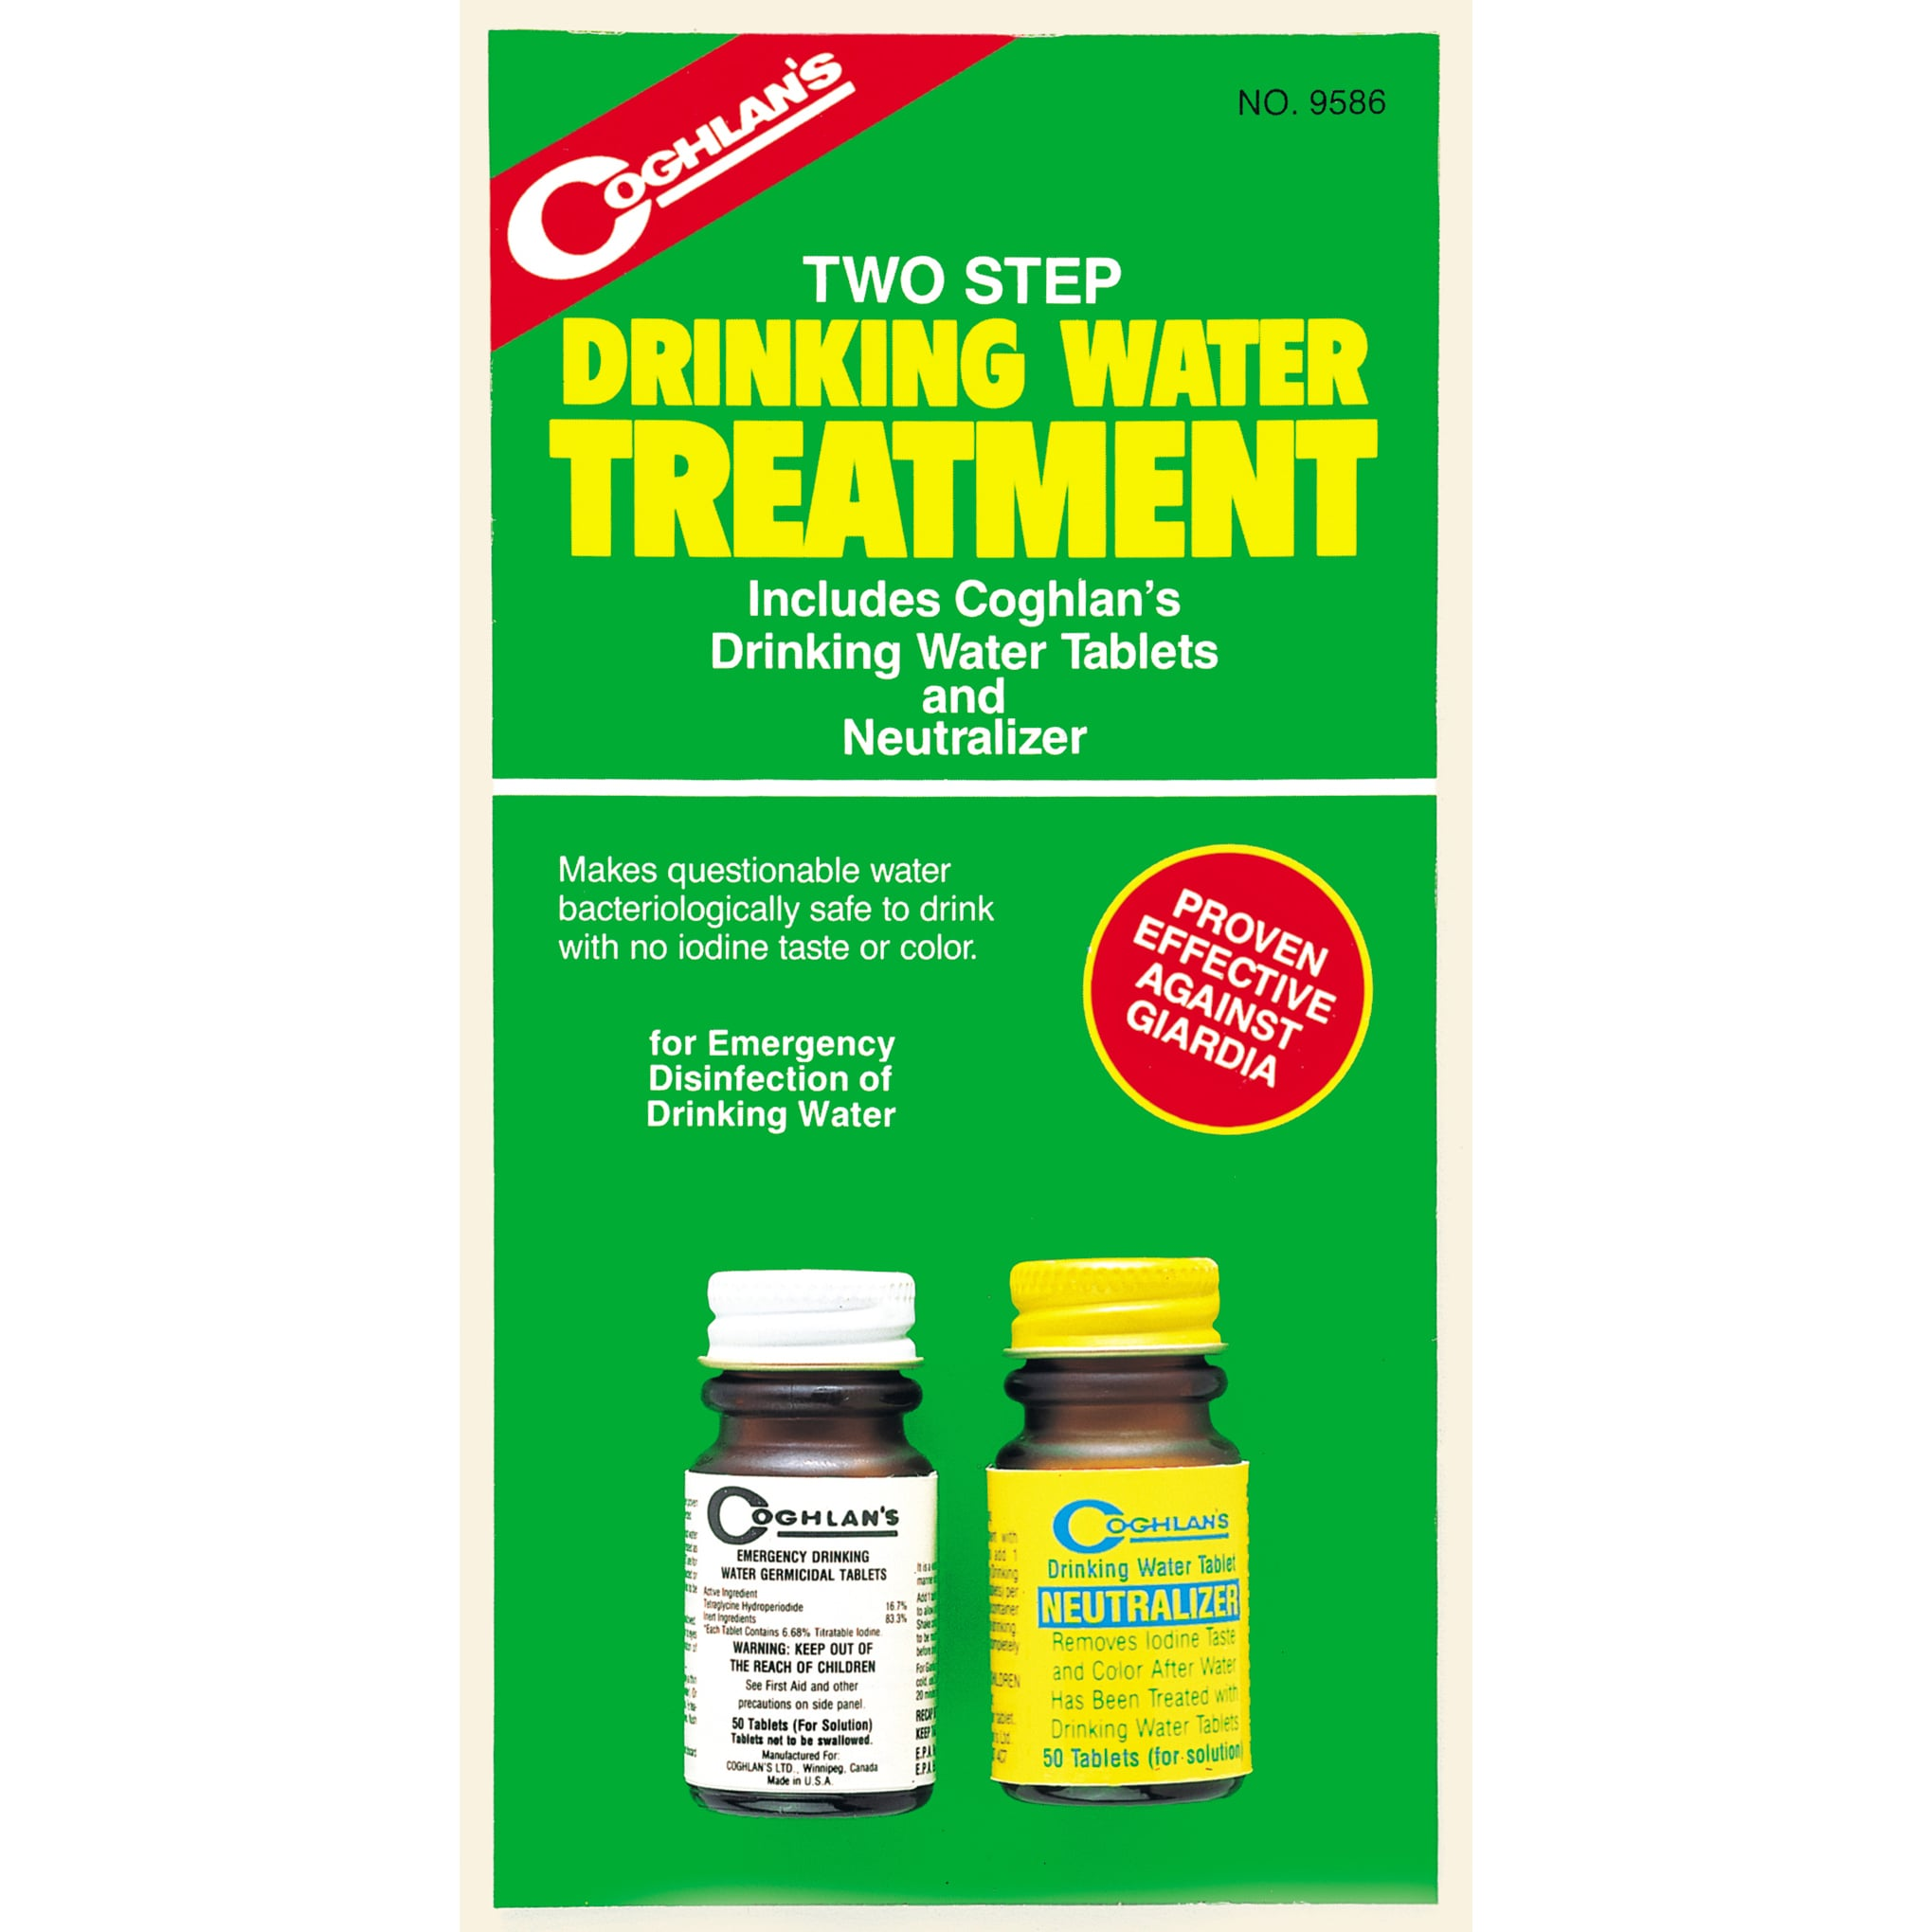 Coghlans Drinking Water Treatment (Germicidal Tablets)